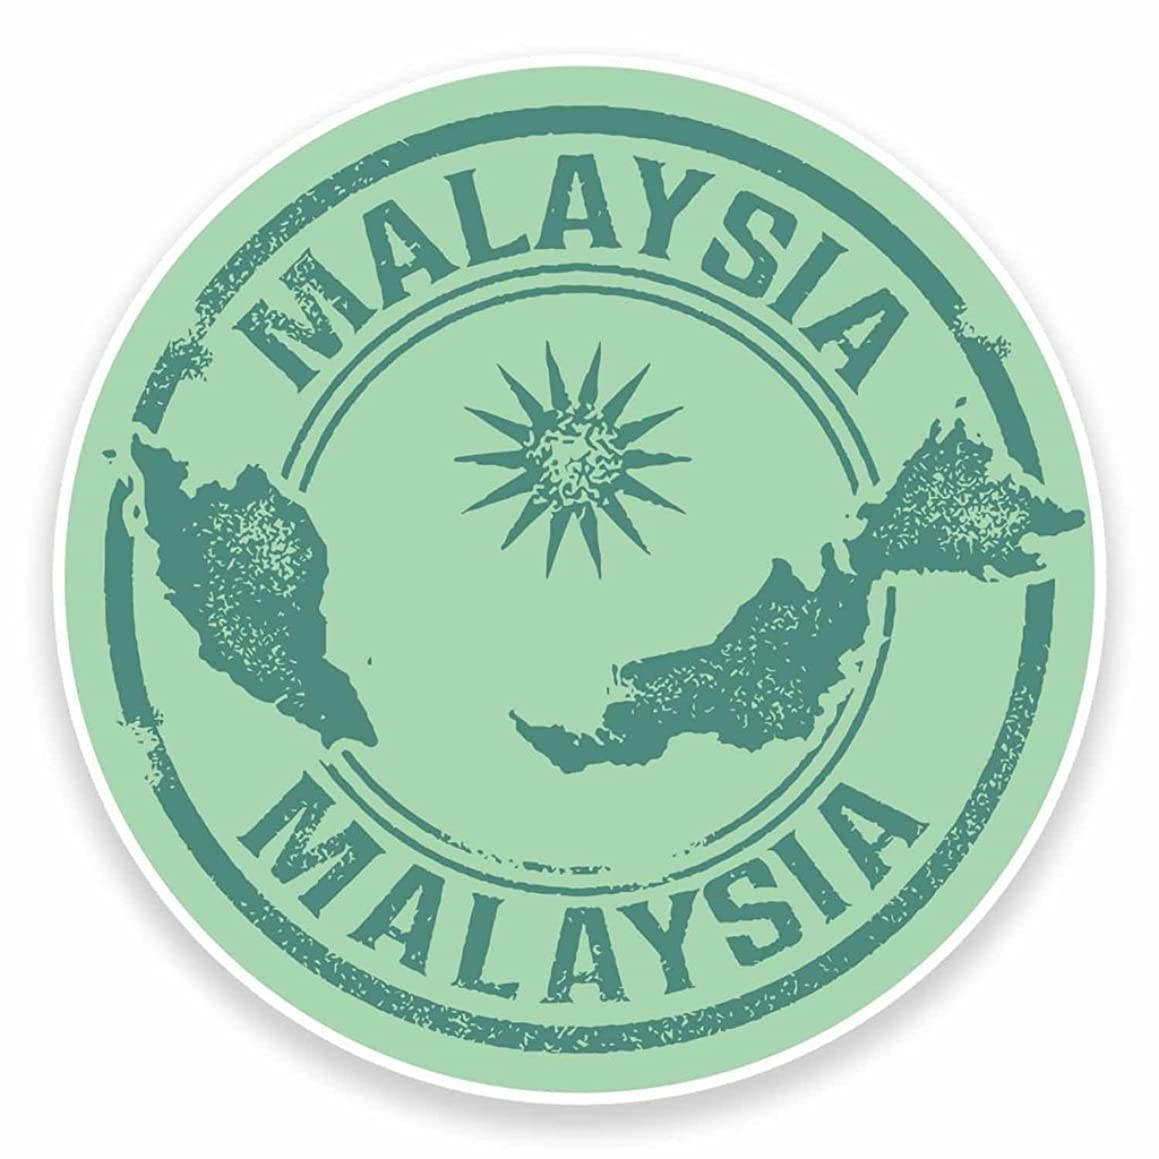 2 x 10cm/100mm Malaysia Vinyl Sticker Decal Laptop Car Travel Luggage Label Tag #9483